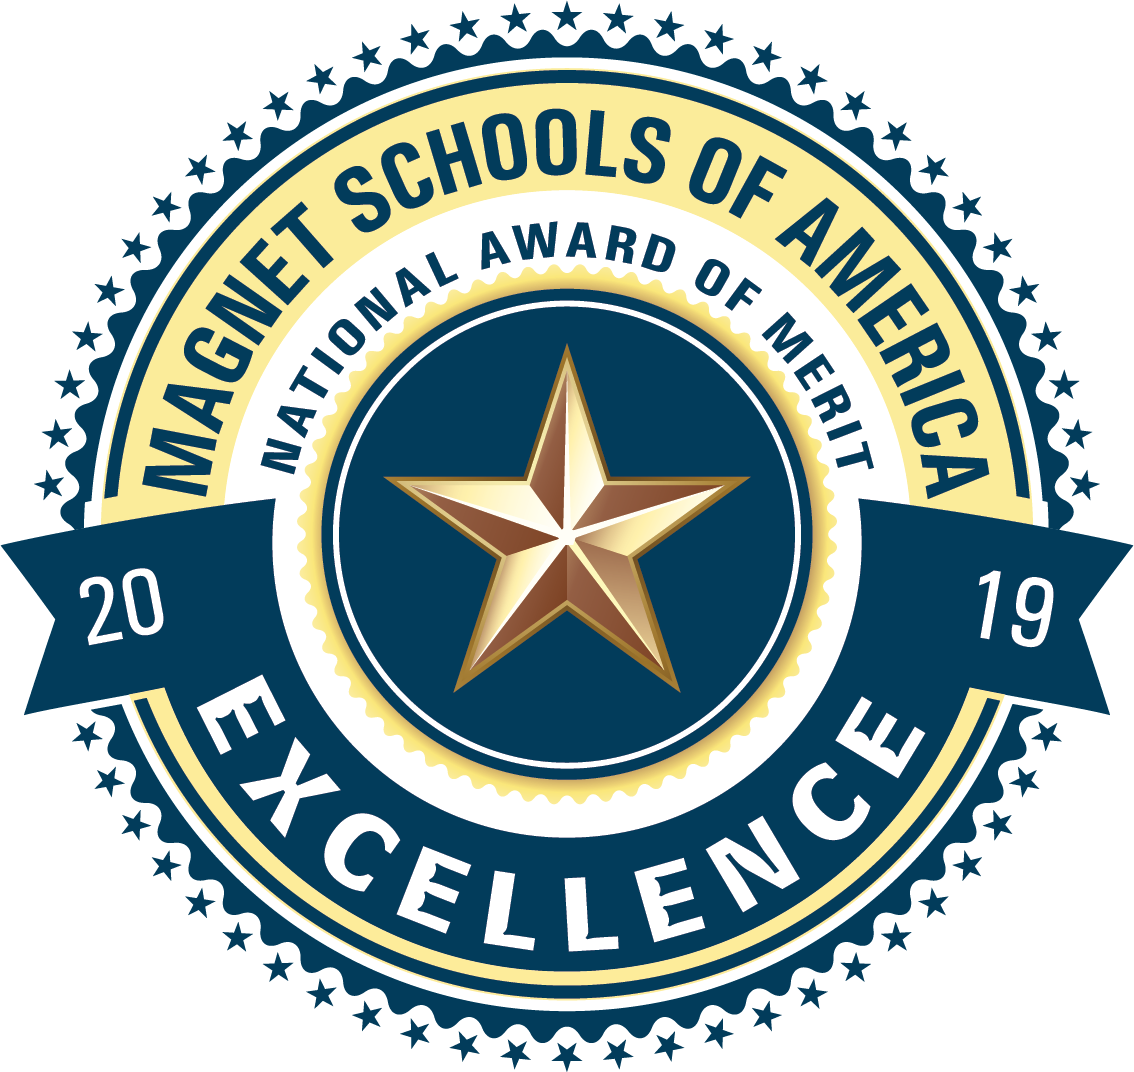 Magnet School of Excellence